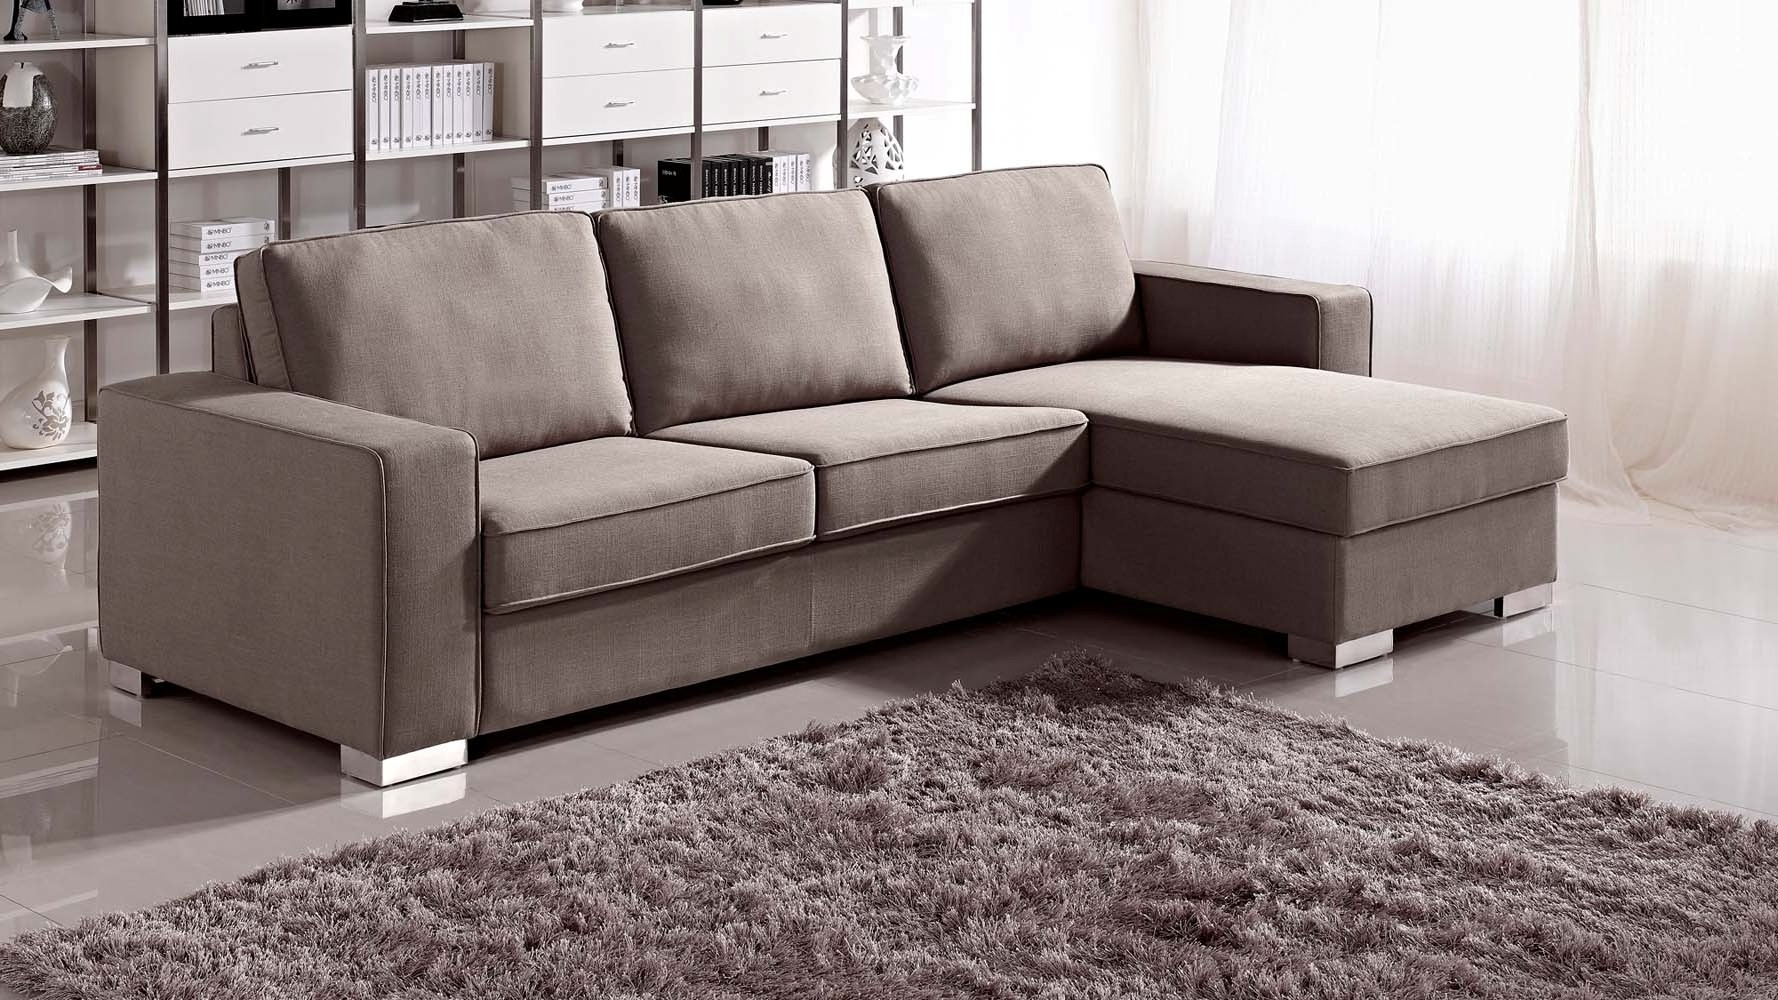 Widely Used Sectional Sofas With Queen Size Sleeper Within Innovative Sofa Sleeper Sectionals Beautiful Interior Design Style (View 14 of 15)